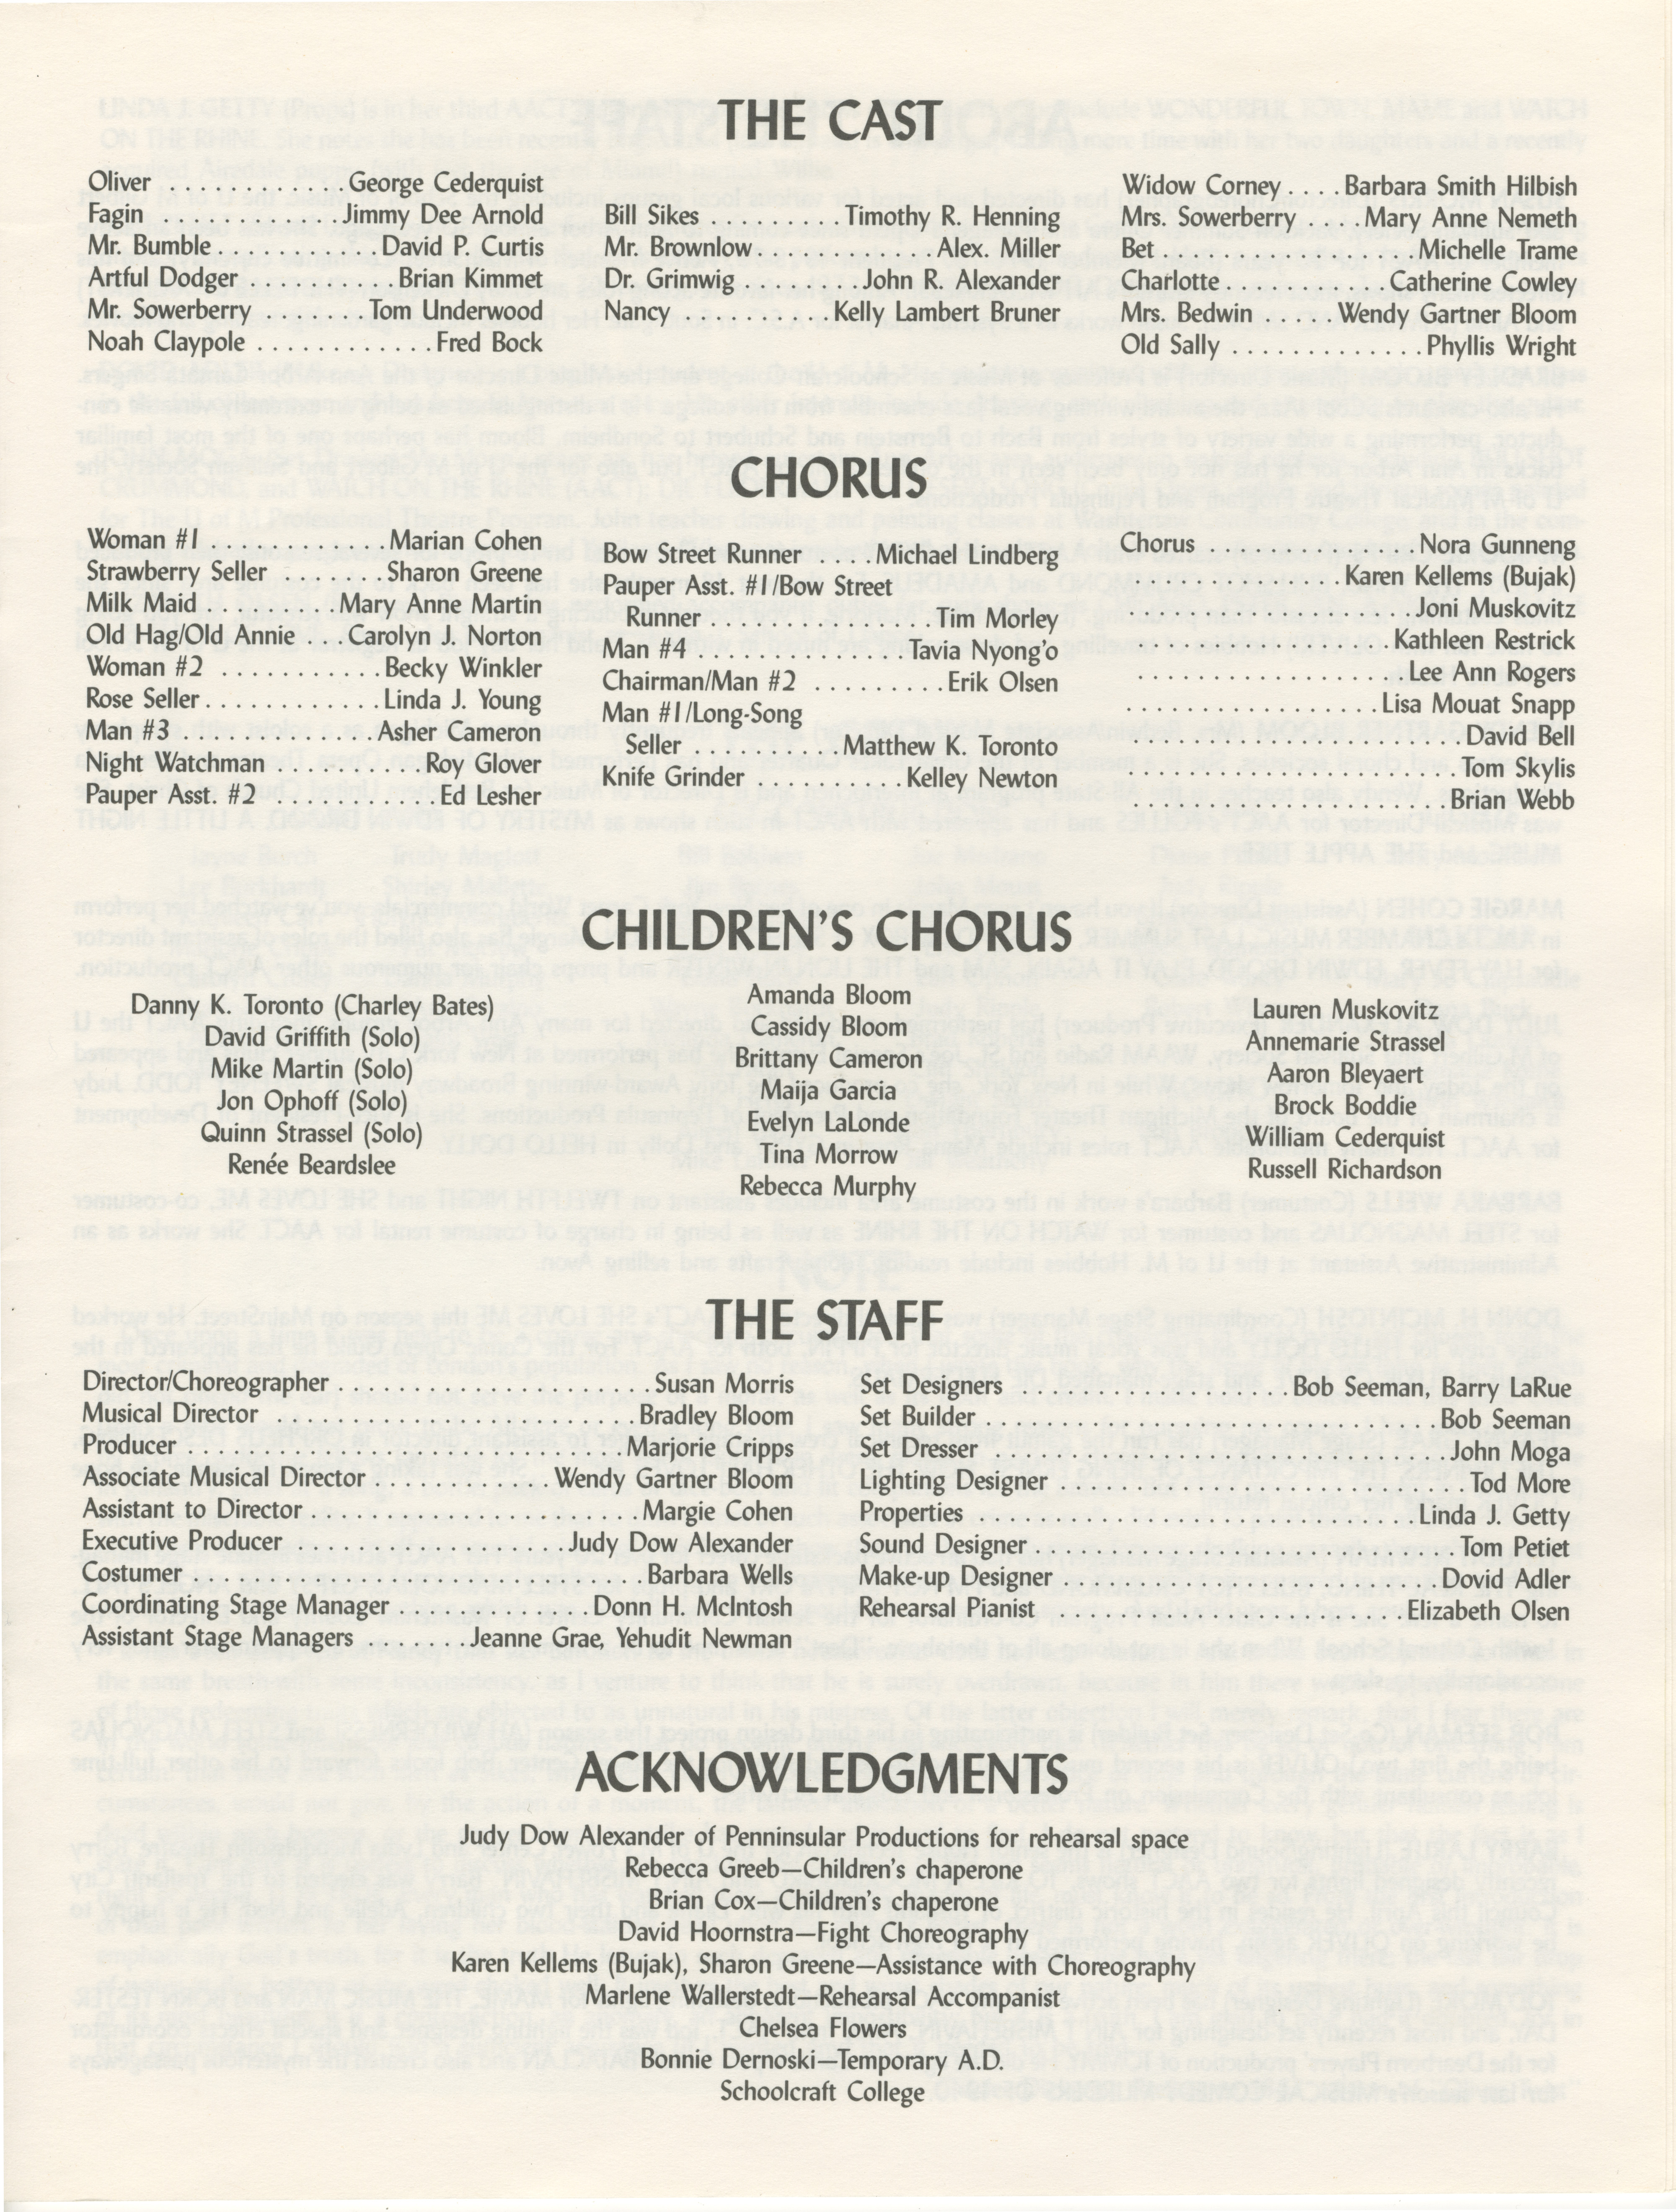 Ann Arbor Civic Theatre Program: Oliver!, May 15, 1991 image